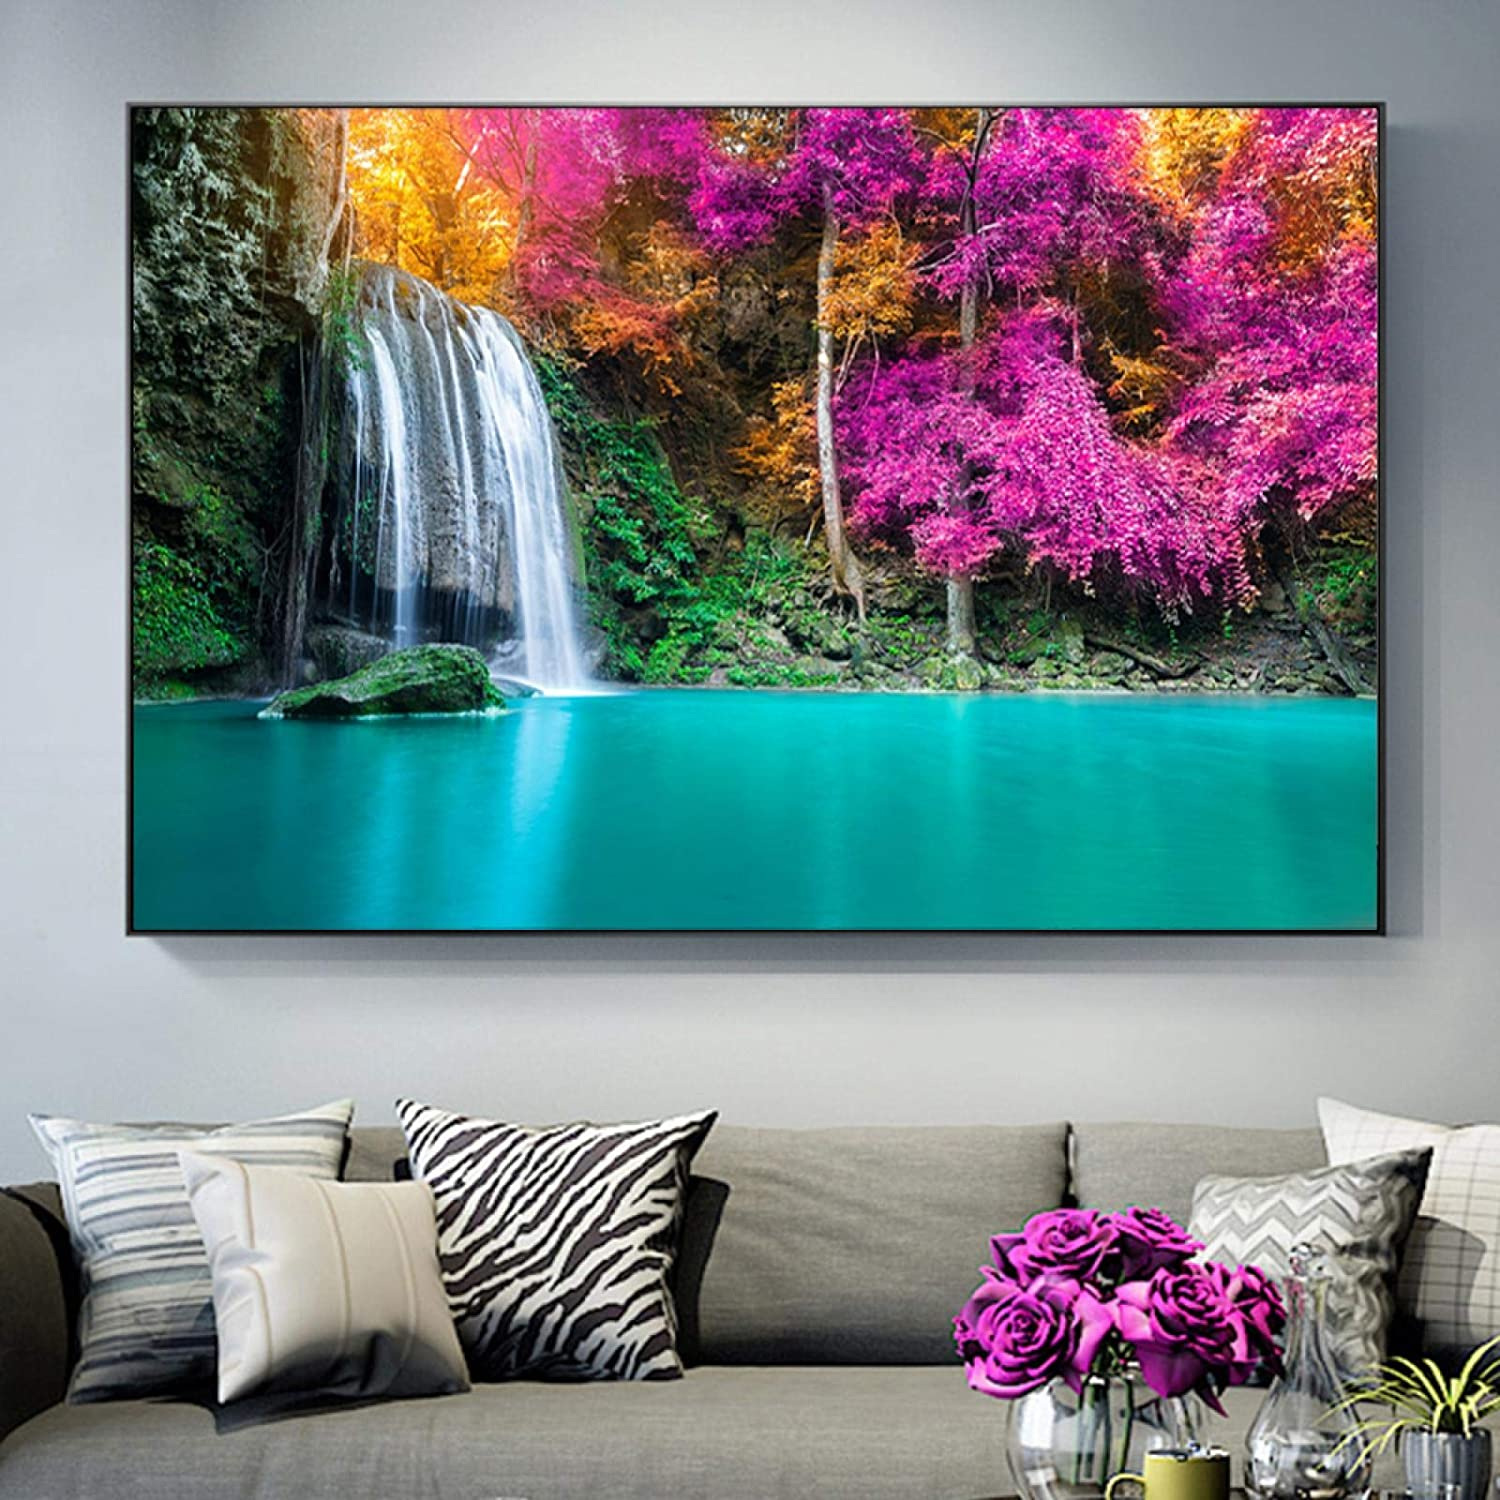 Wall Art Poster Prints Waterfalls Park Landscape Discount mail order Autumn Canvas P New popularity